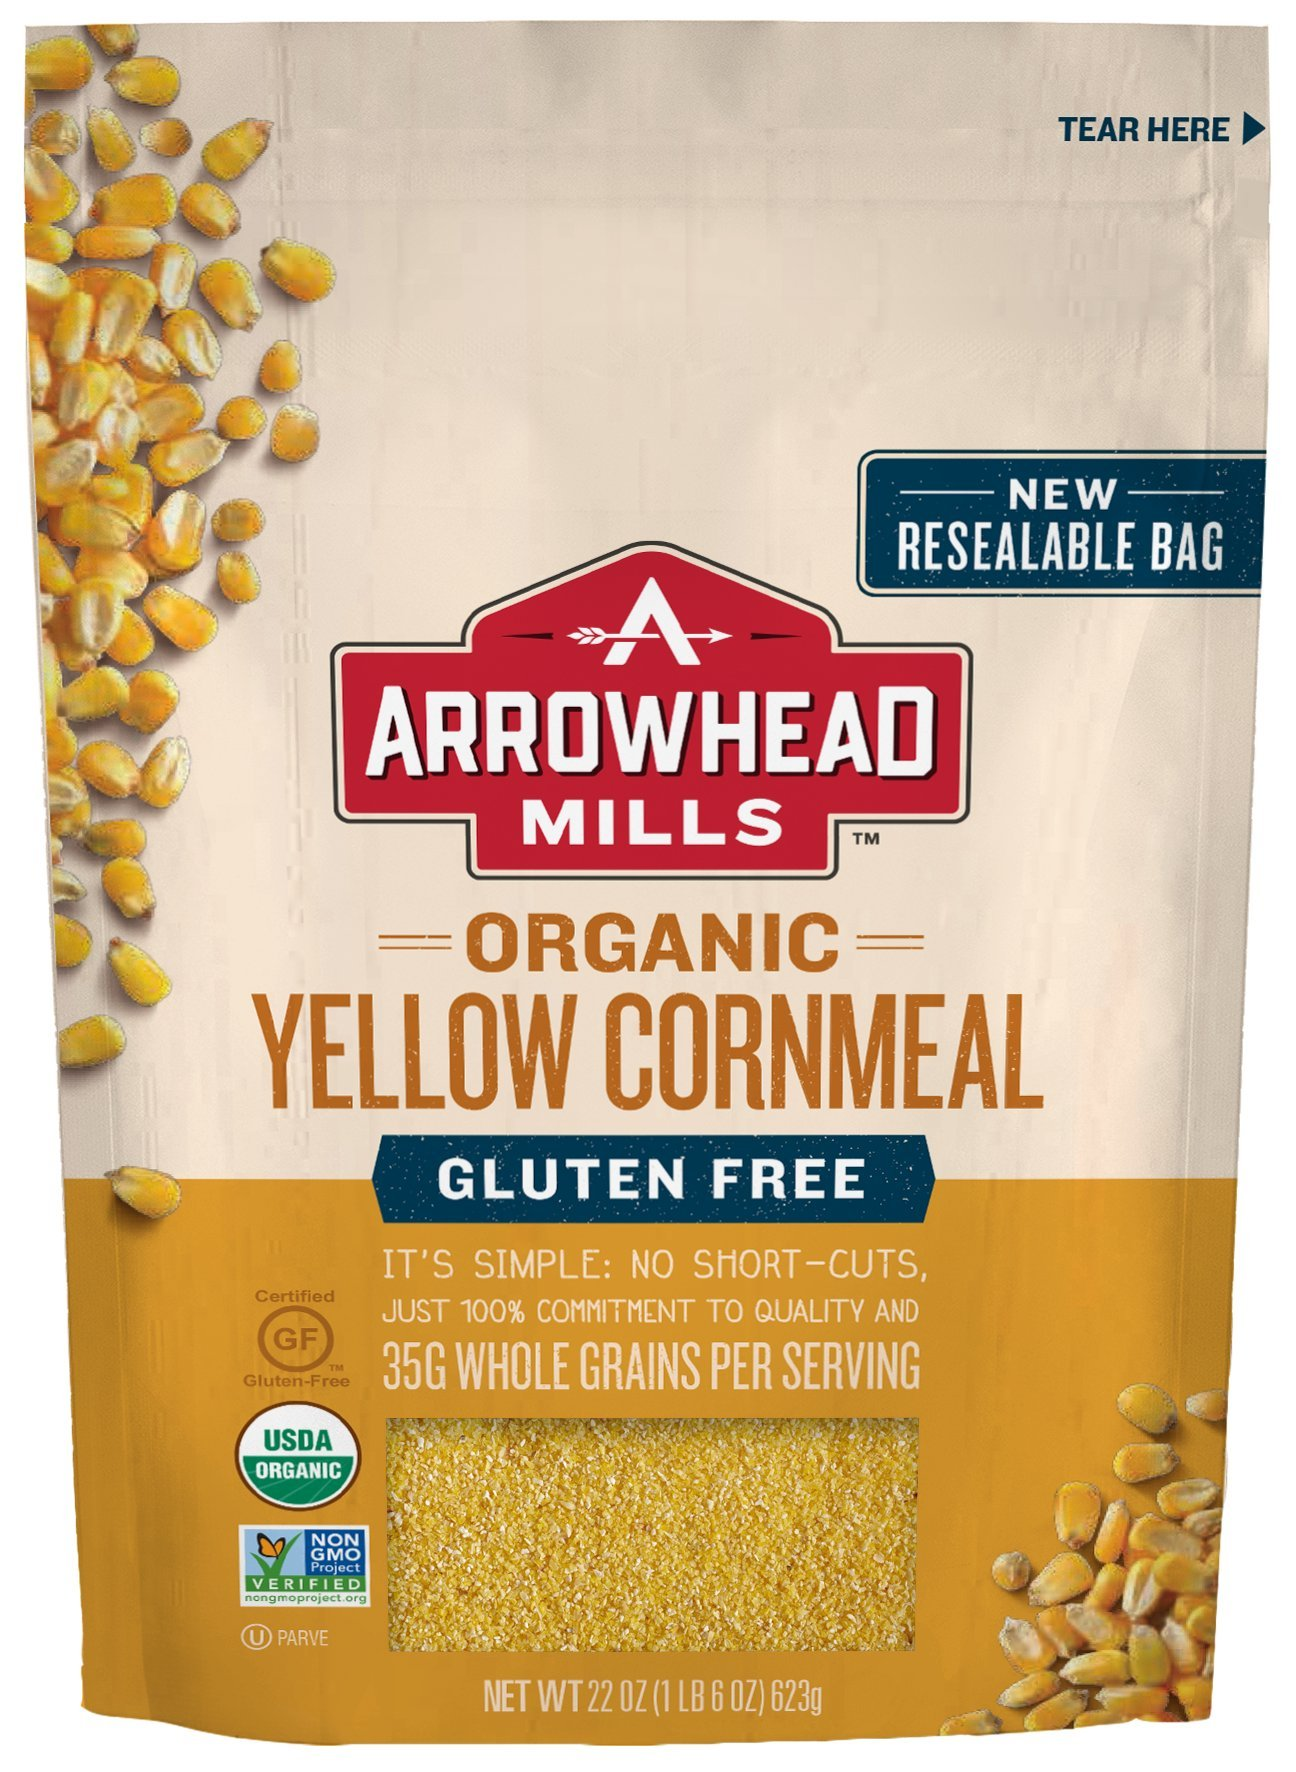 Arrowhead Mills Organic Gluten Free Yellow Corn Meal, 22 oz. Bag (Pack of 6) by Arrowhead Mills